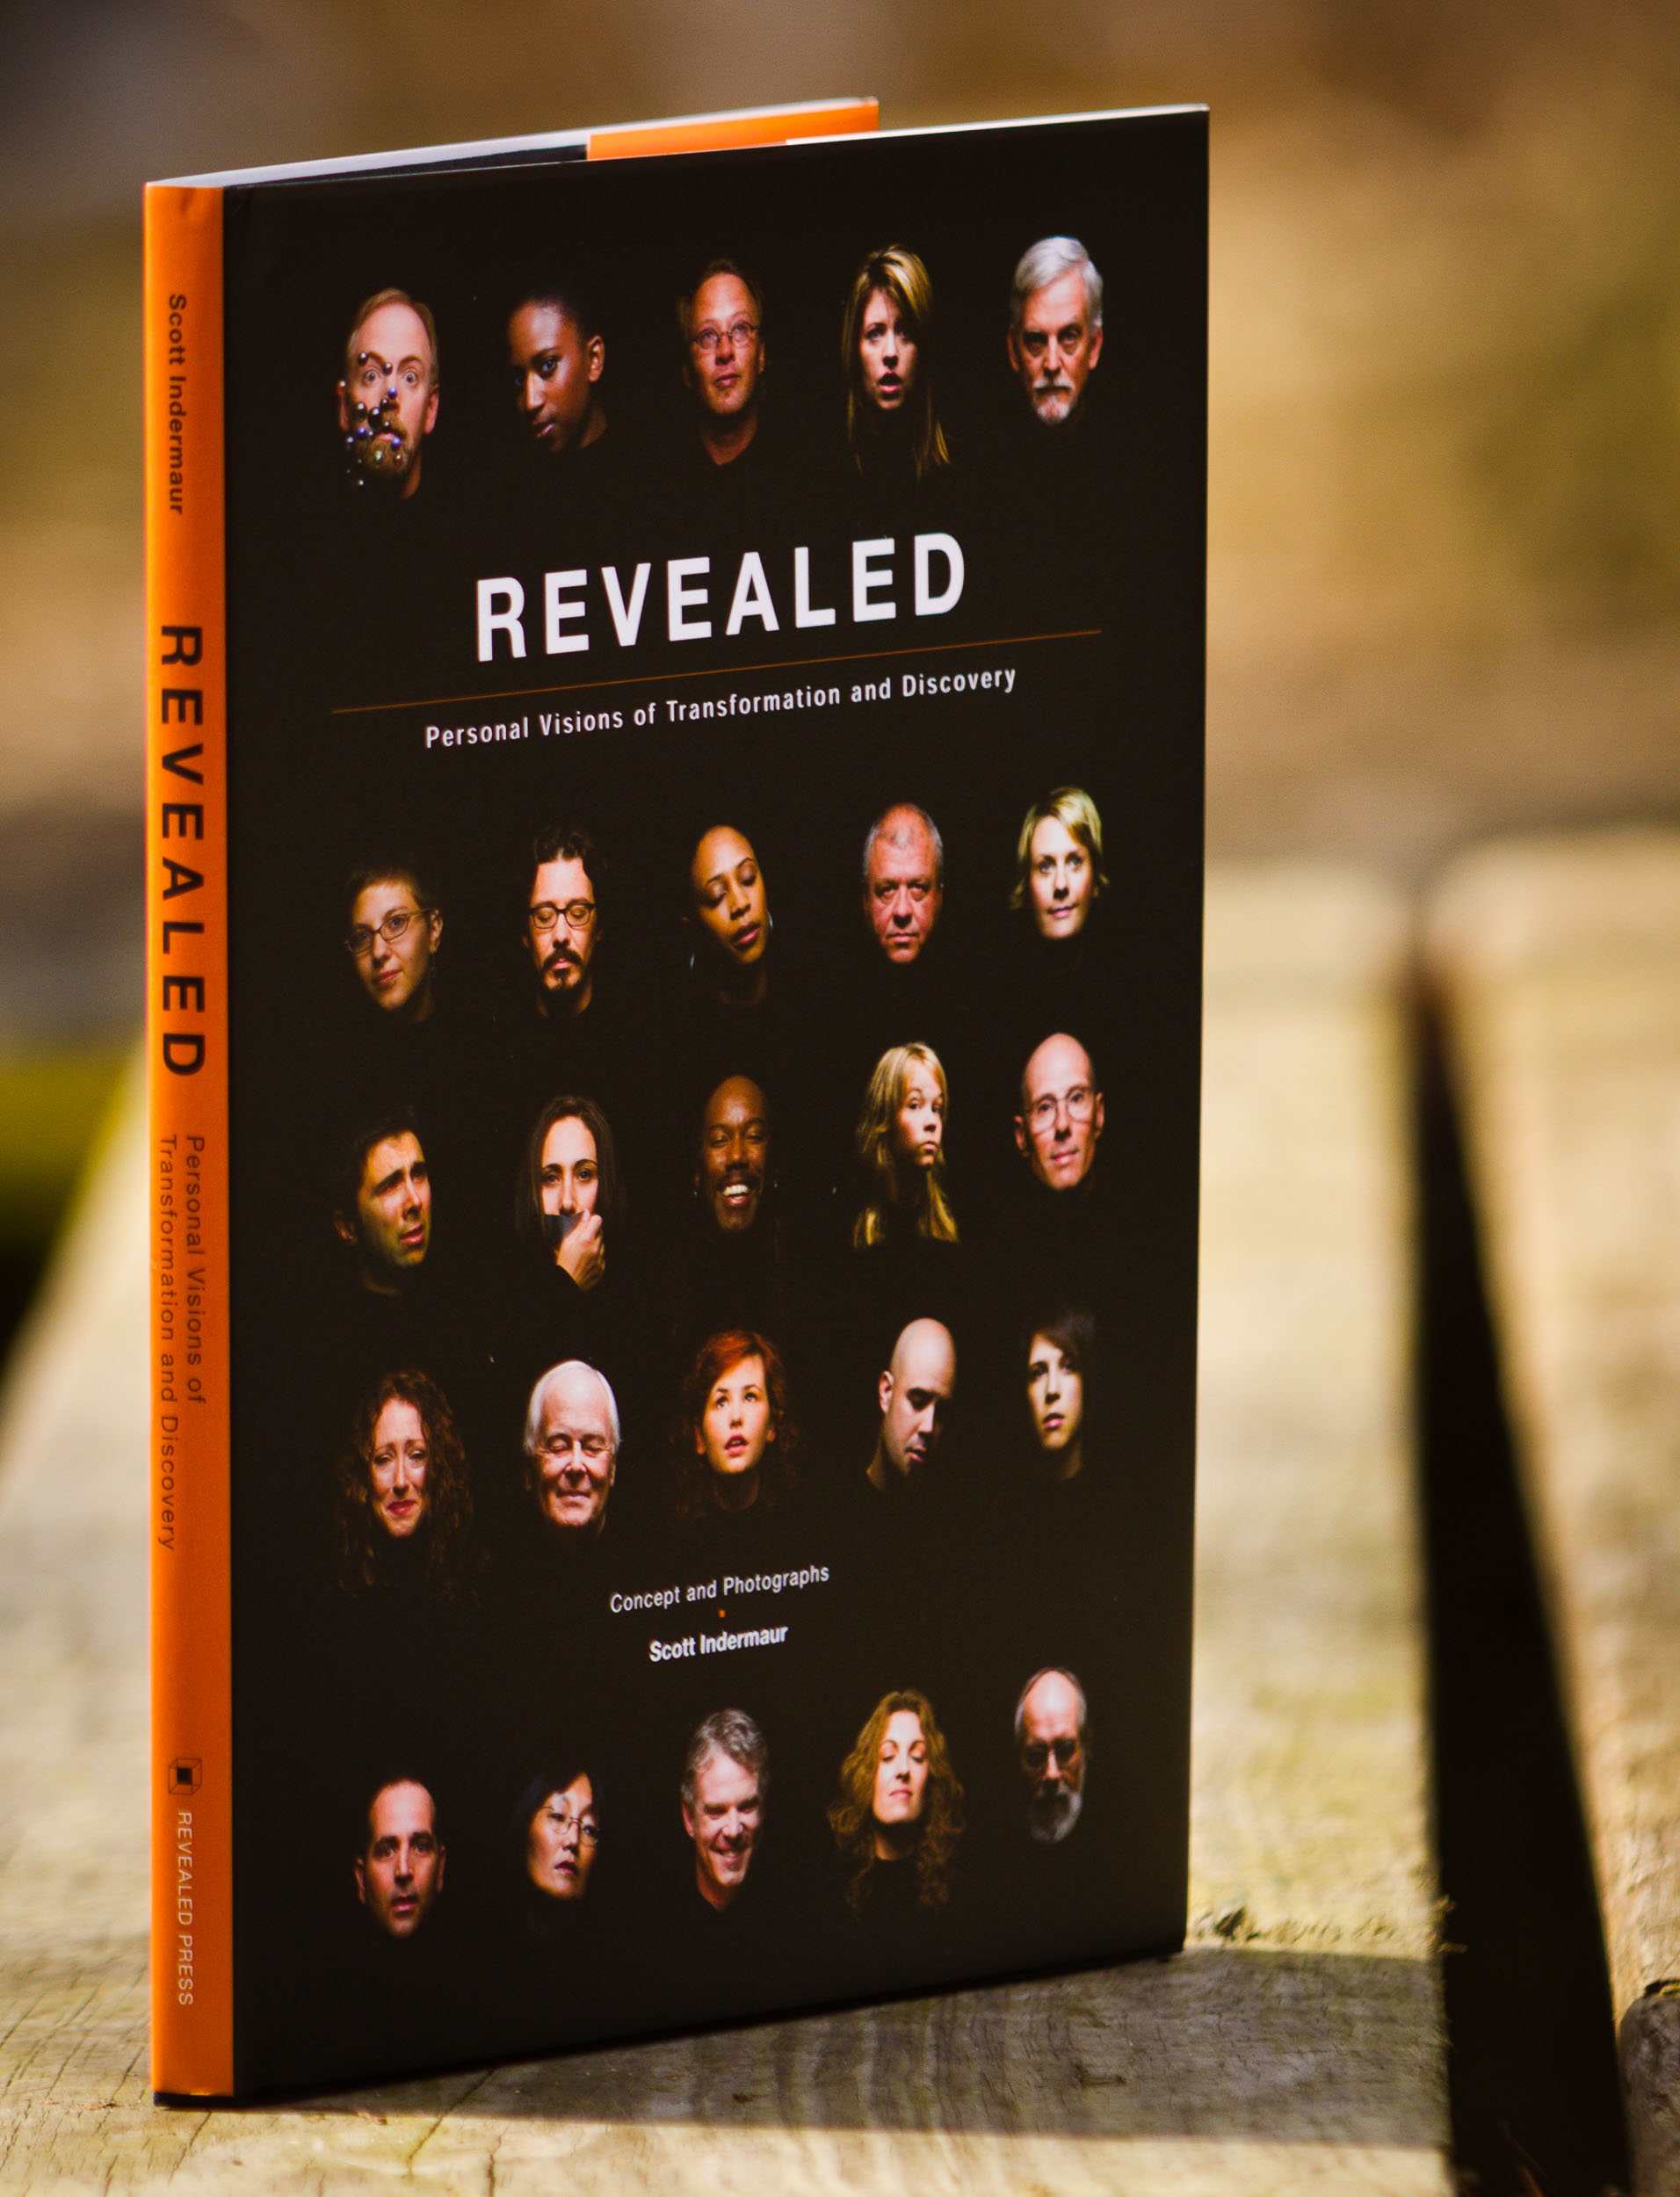 "- REVEALED: Personal Visions of Transformation and DiscoveryREVEALED is an exploration of self - a glimpse into the spiritual expressions and personal beliefs of the participants. Using individual portraits and short personal essays, Scott Indermaur has created a one-of-a-kind photographic series that uncovers what lies beneath the surface in each of us.In giving its subjects the time to reflect and connect with their ""selves', The REVEALED Project demonstrates both our singular uniqueness and the common thread we share with one another. The result is the intention of expression as revealed in a wooden box."